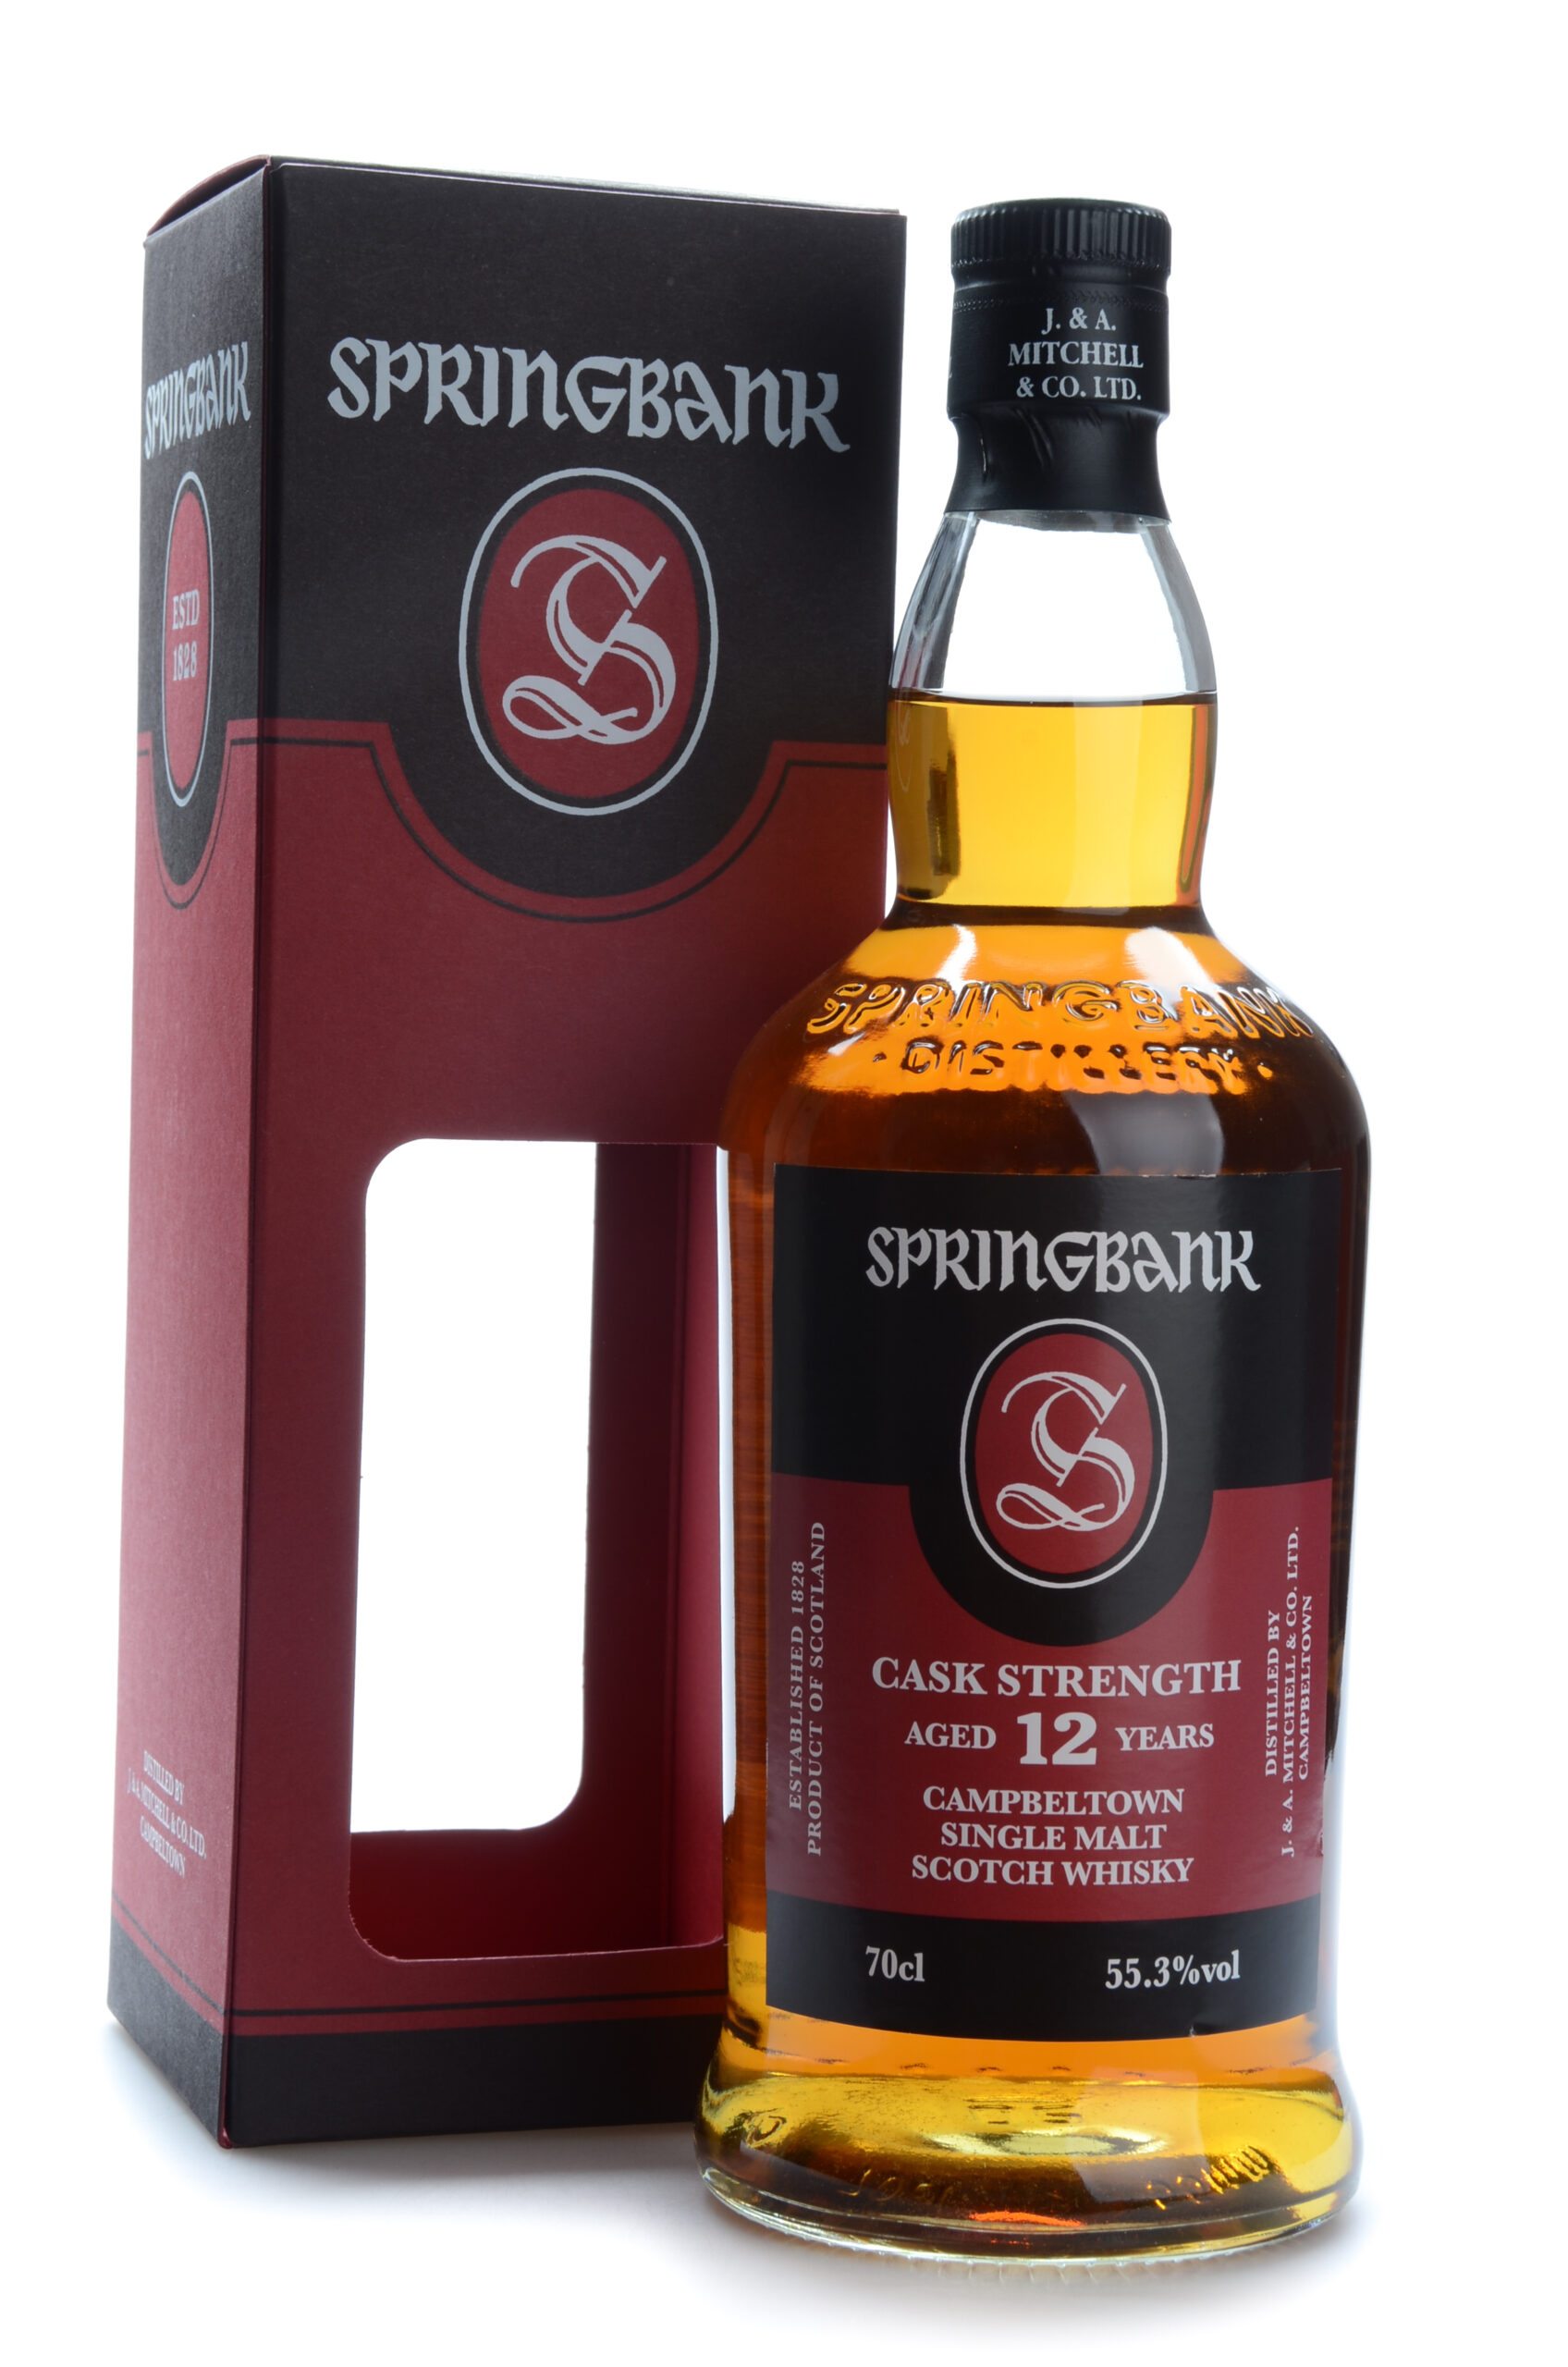 Springbank cask strength 12 years 55.3%